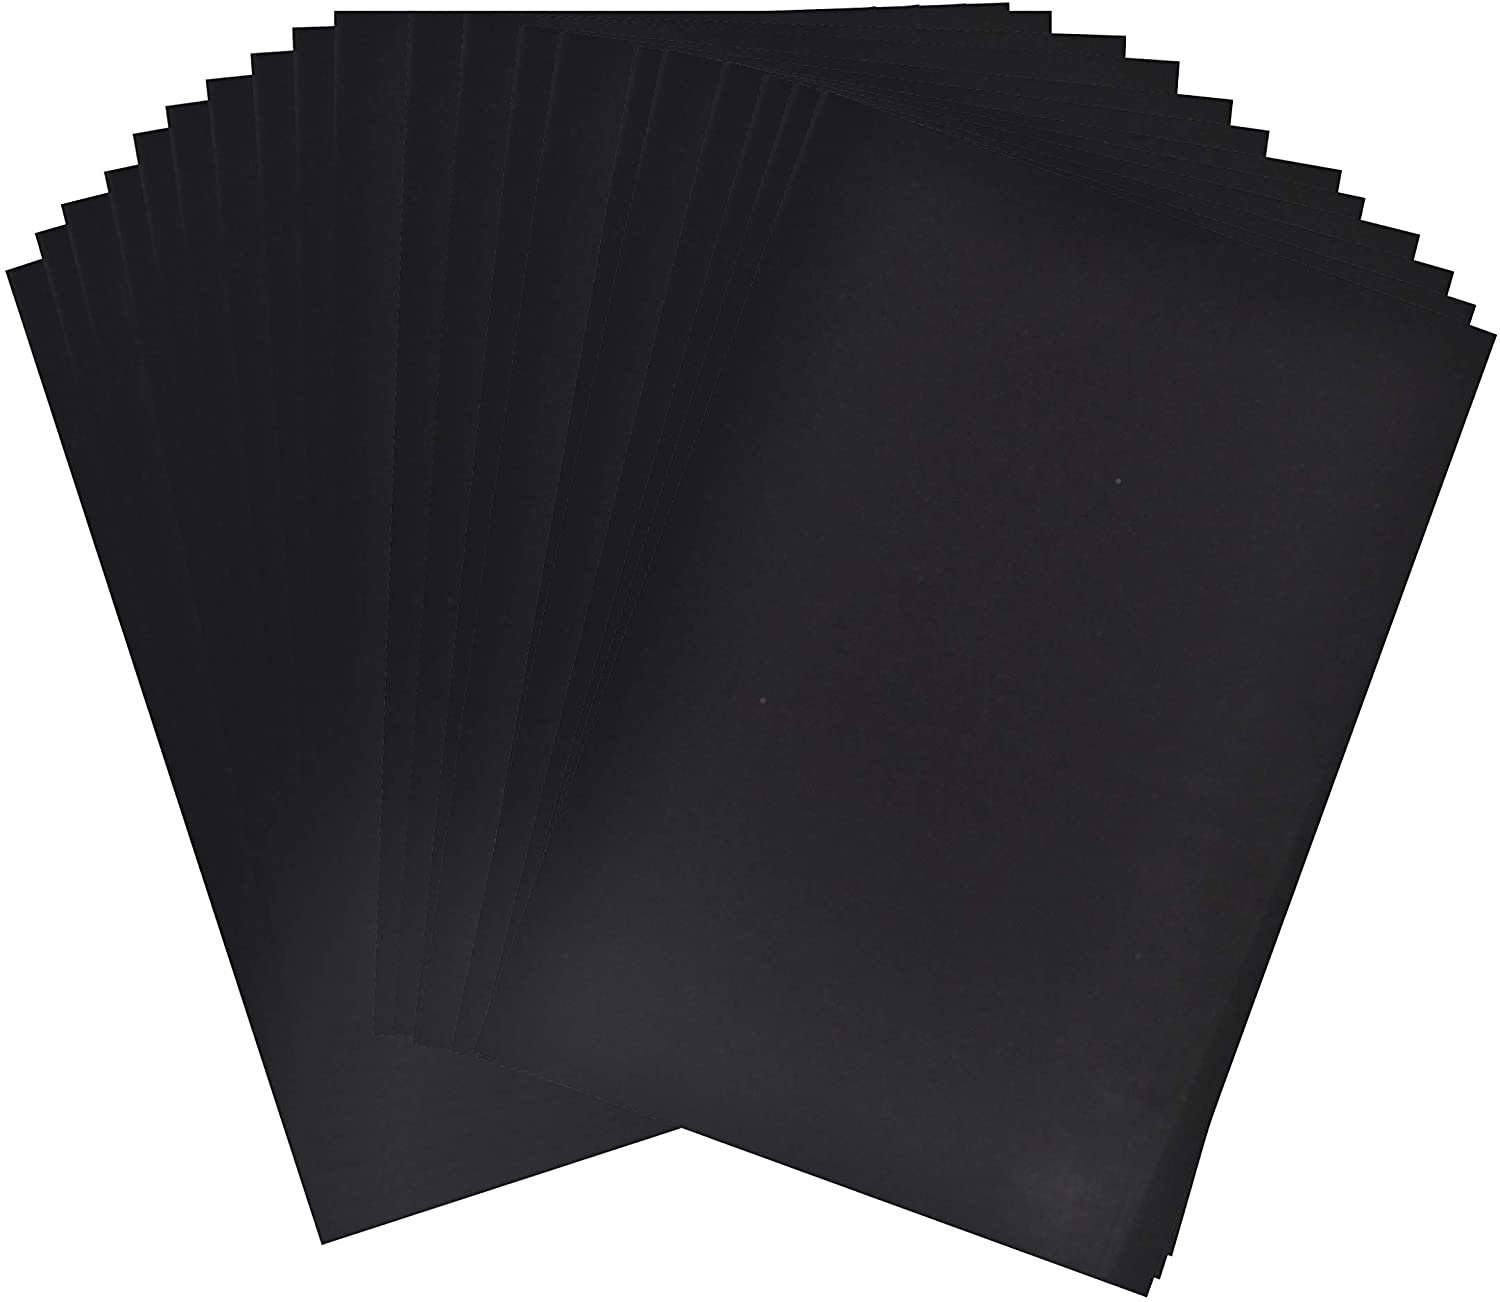 Adhesive Backed Felt Sheet for Crafts, Drawer Liner; 20 PCs Velvet Fabric Strip with Sticky Backing by Mandala Crafts (11.5 X 8 Inches, Black)